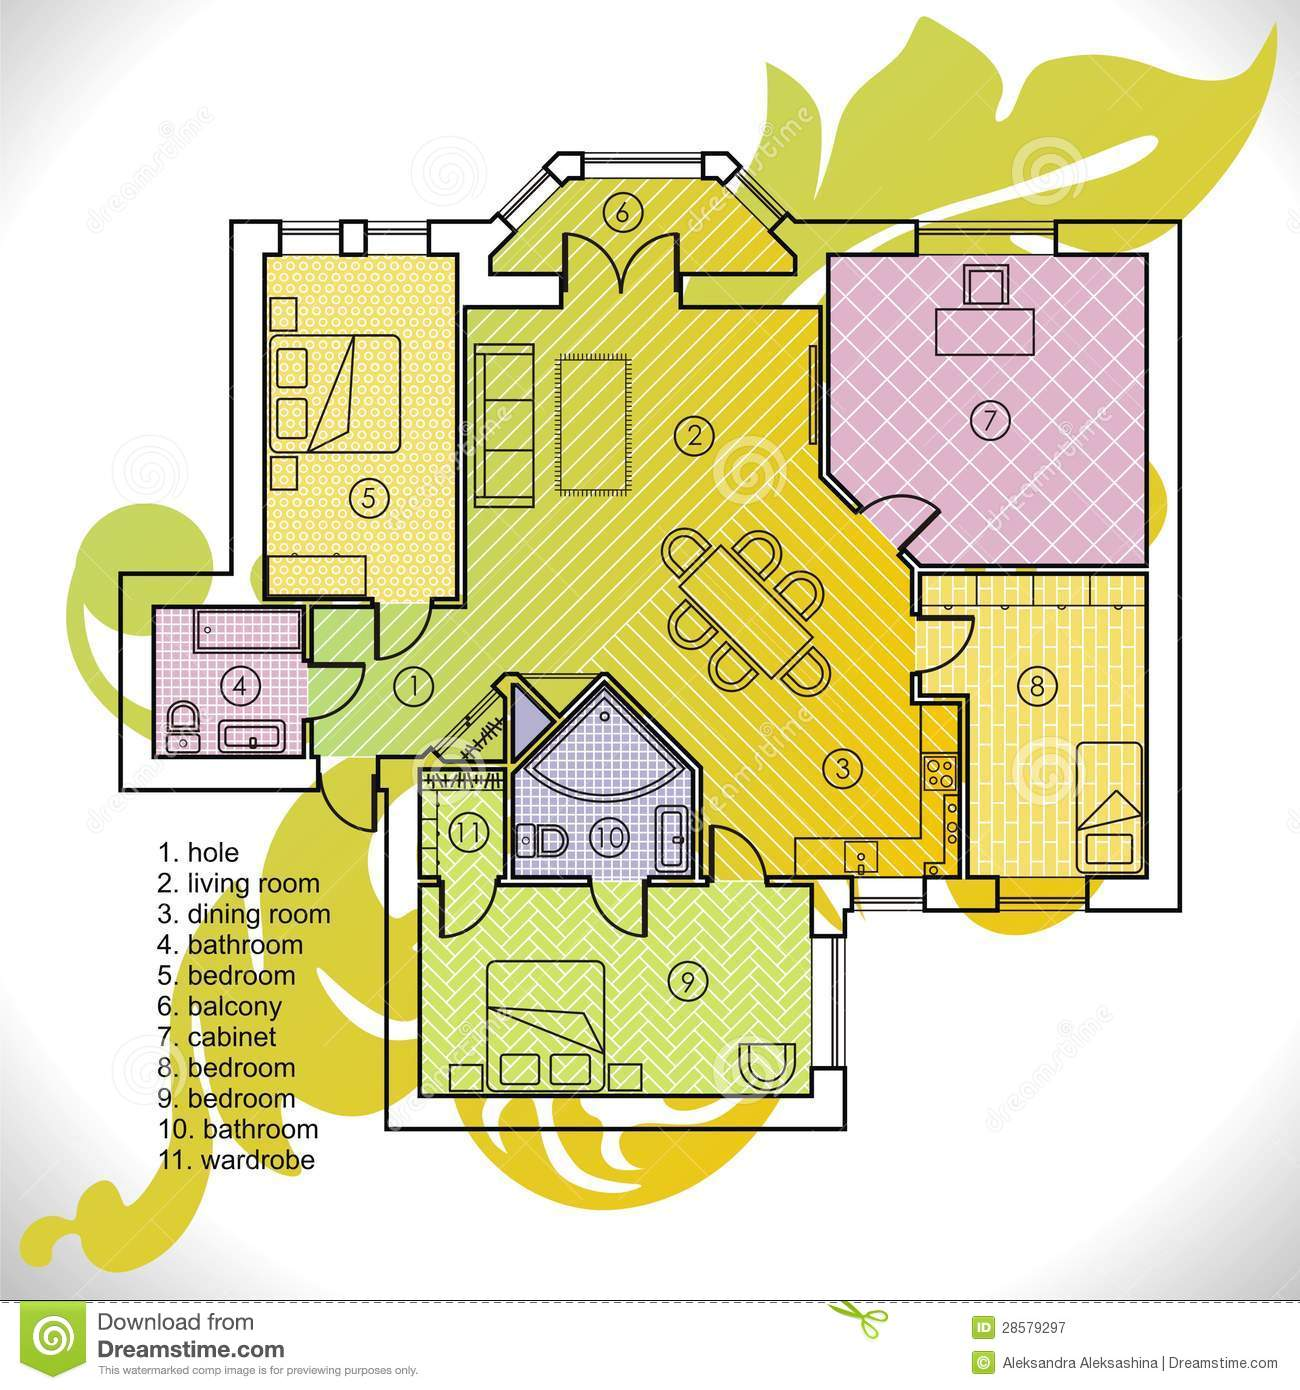 Plan d 39 appartement photographie stock libre de droits for Plan de conception de plan libre